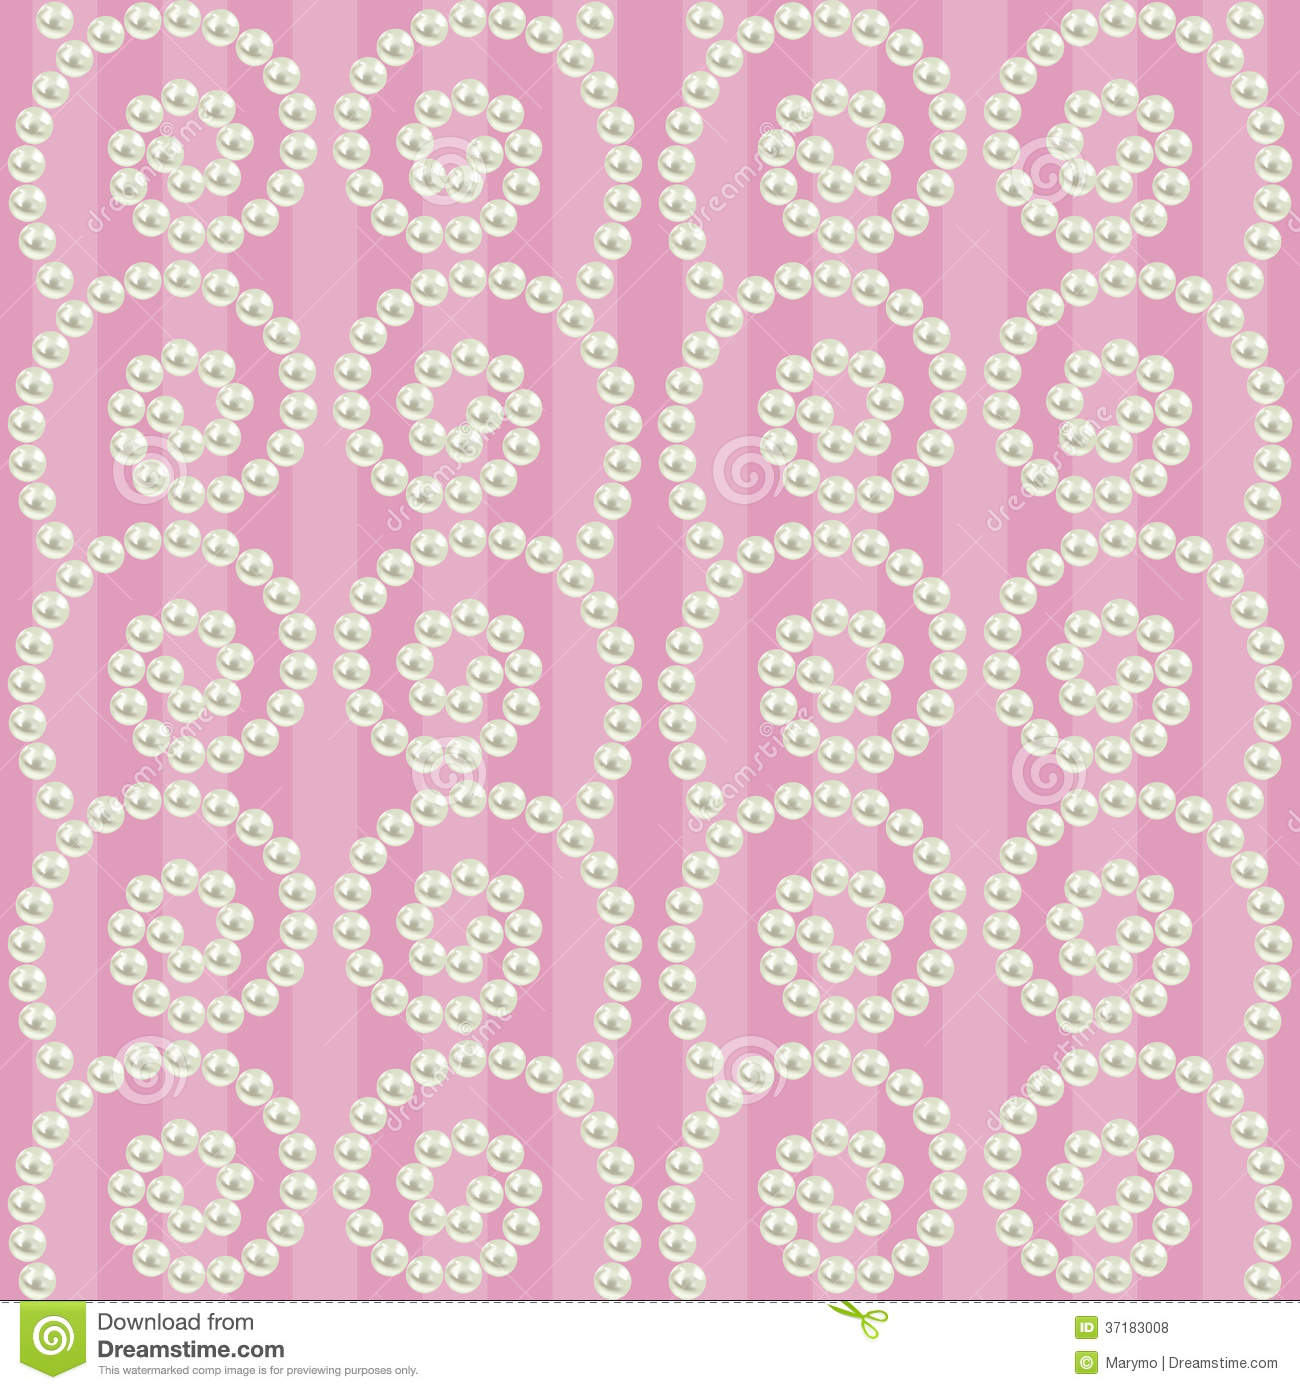 Luxury Seamless Pattern With Pearls Wavy Borders Royalty Free Stock Photos